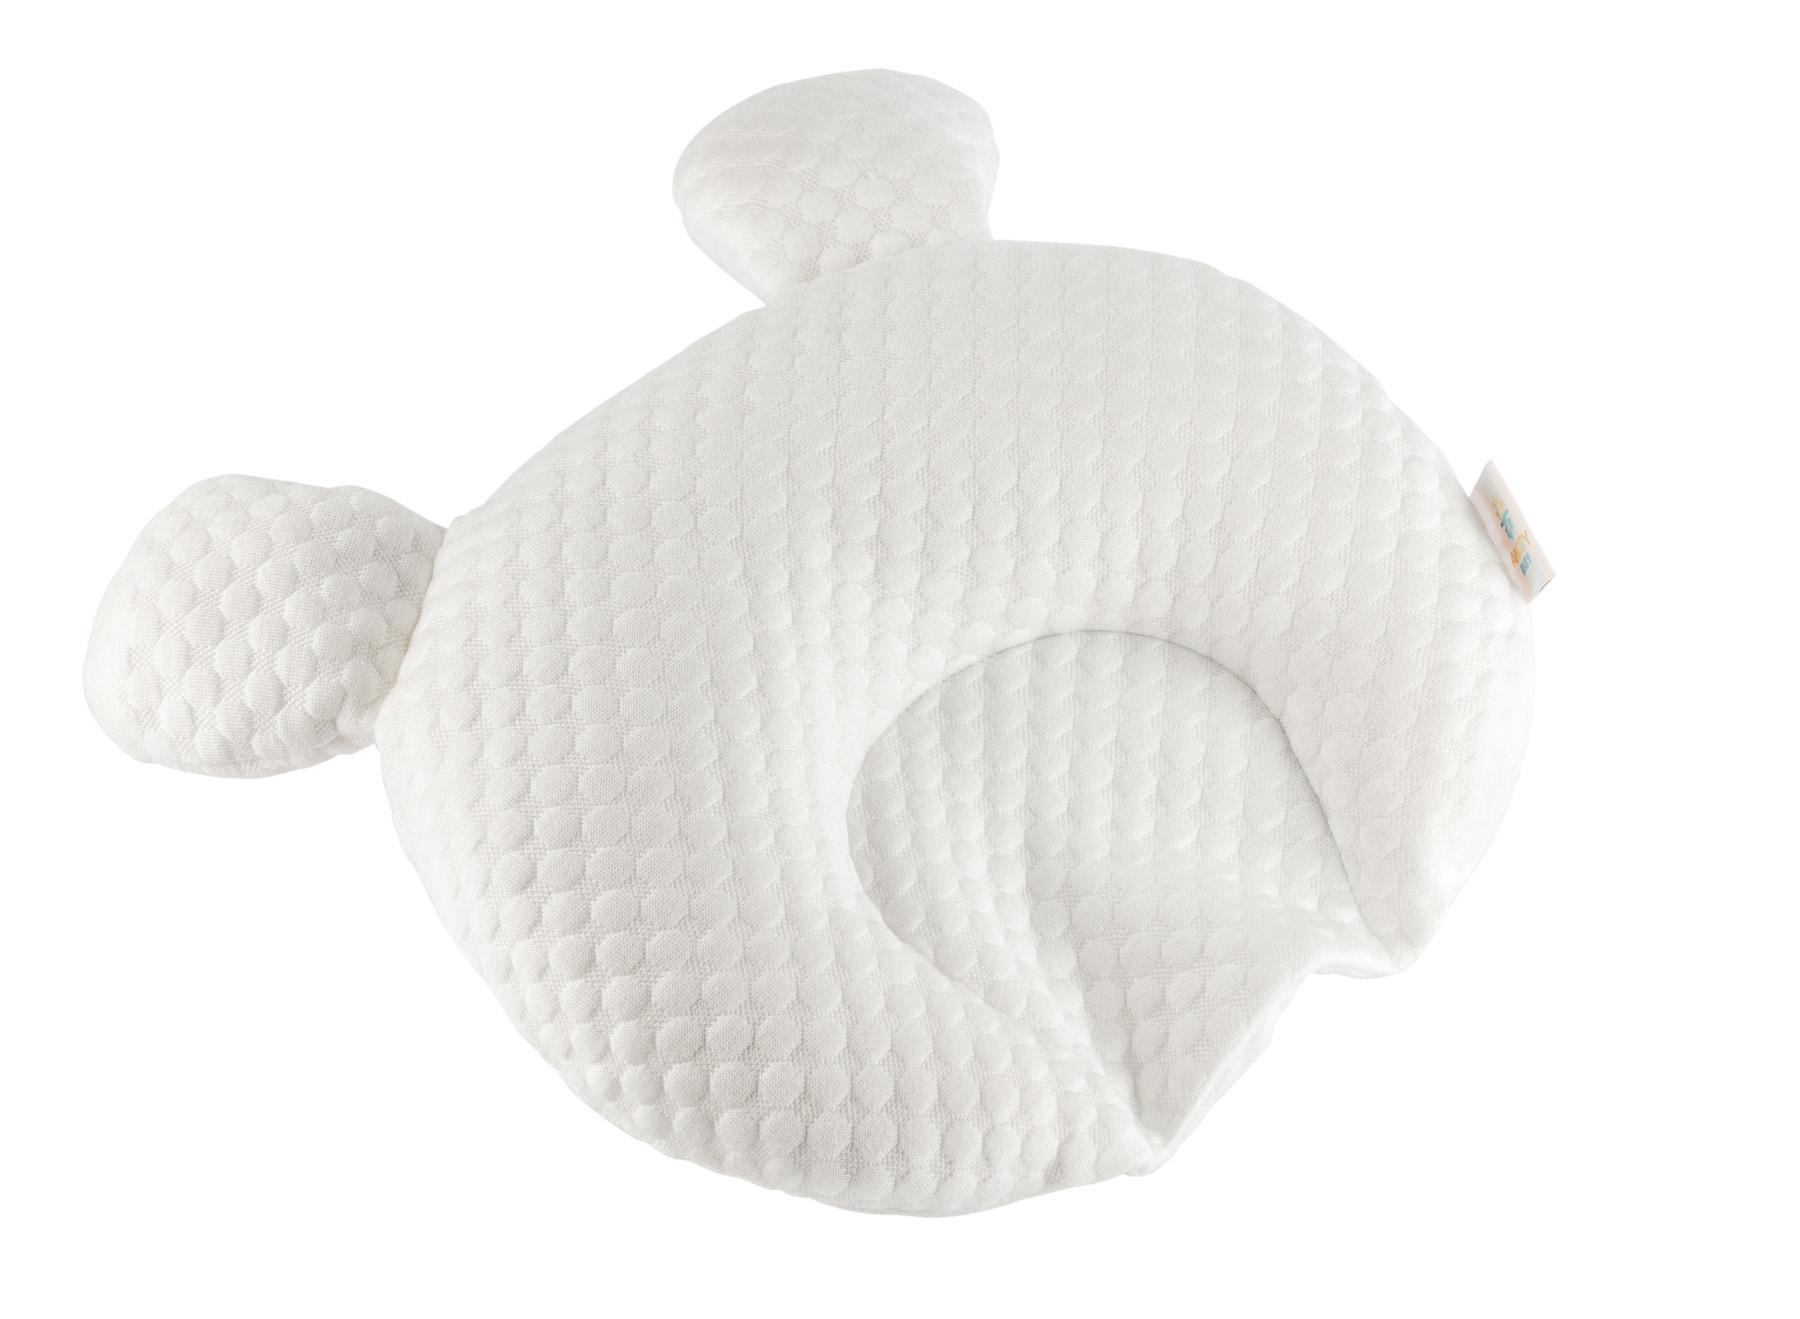 Baby Pillow Over top side view no Background_- Advertising product photography for Amazon